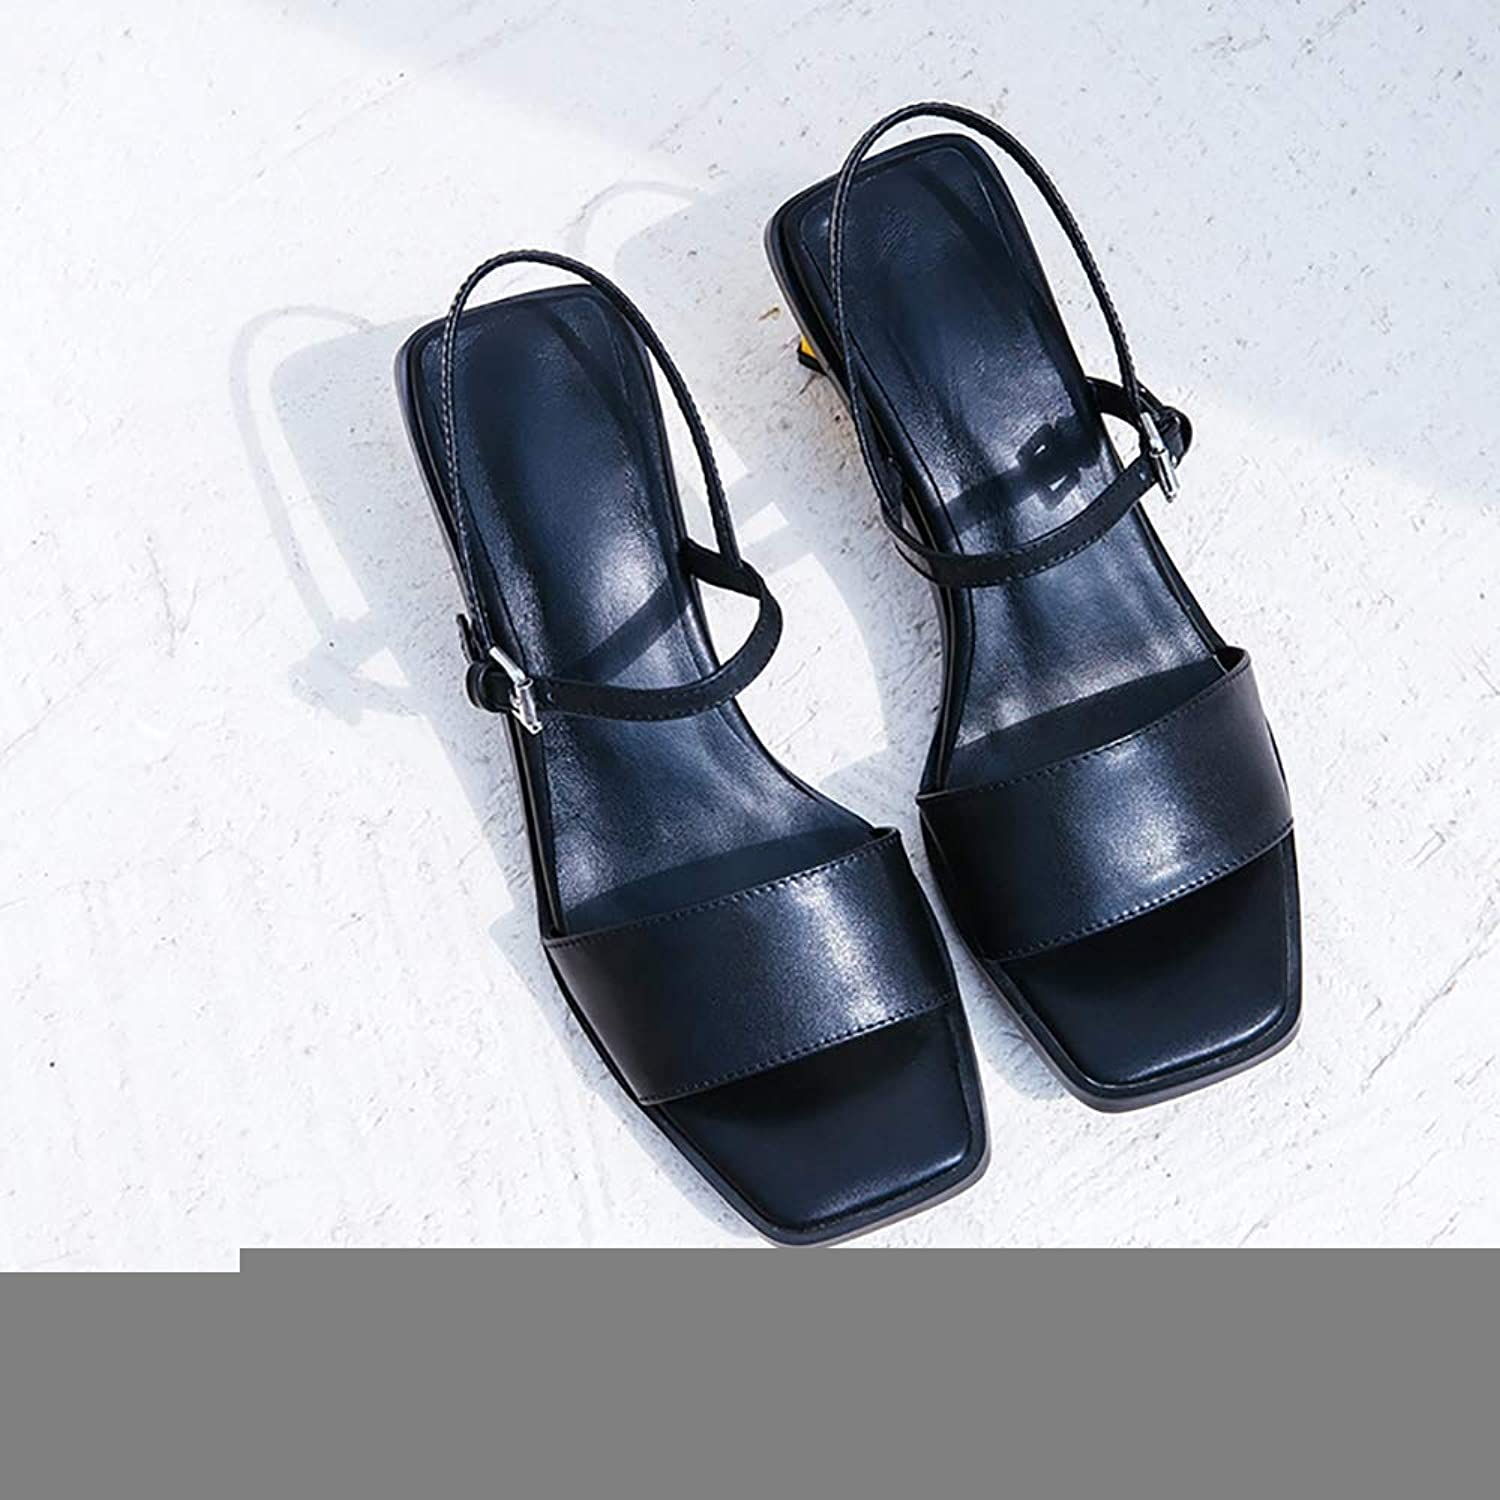 Women's Classic High Heel Sandals, Cross Strappy Ankle Strap Classic Open Toe Simple Leather shoes,Black,38